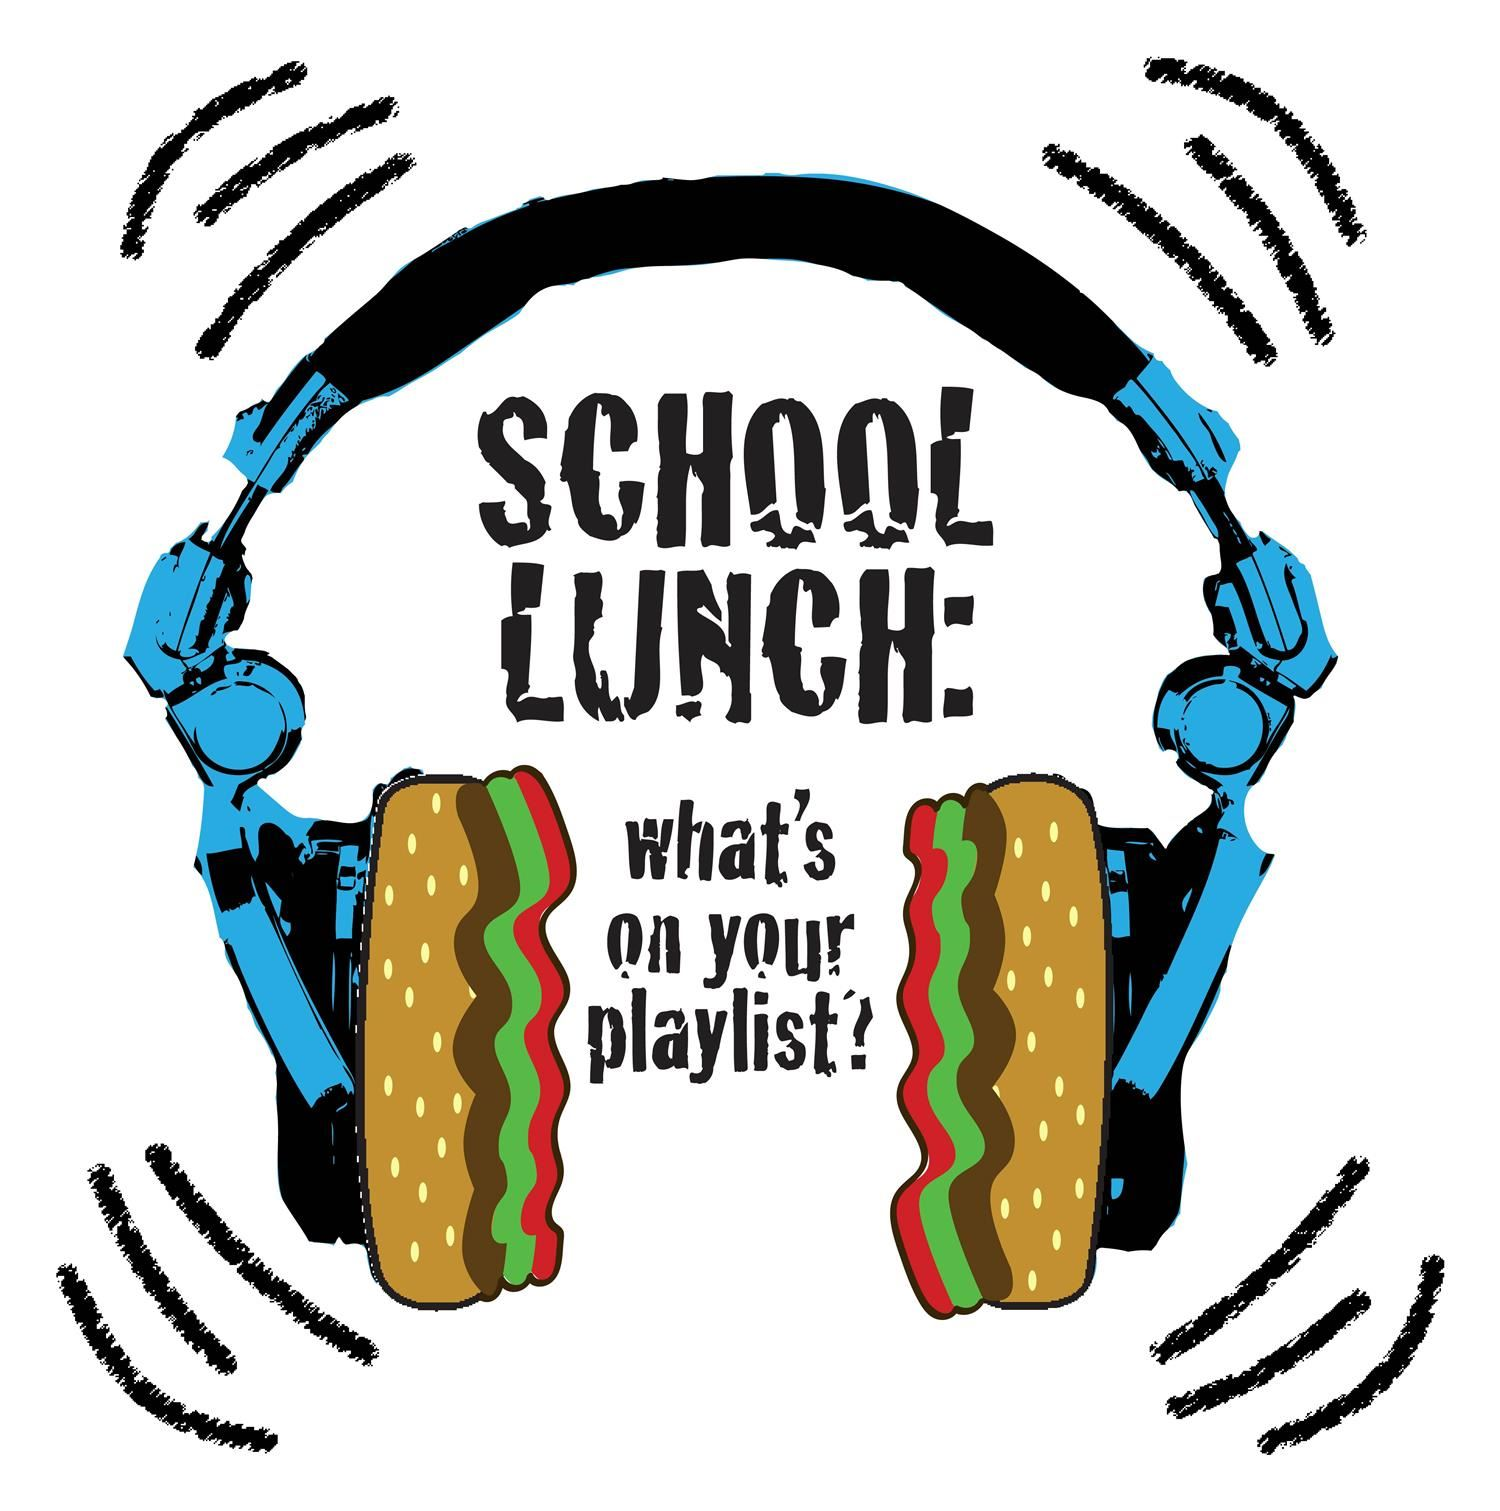 School Lunch: What's on your playlist?